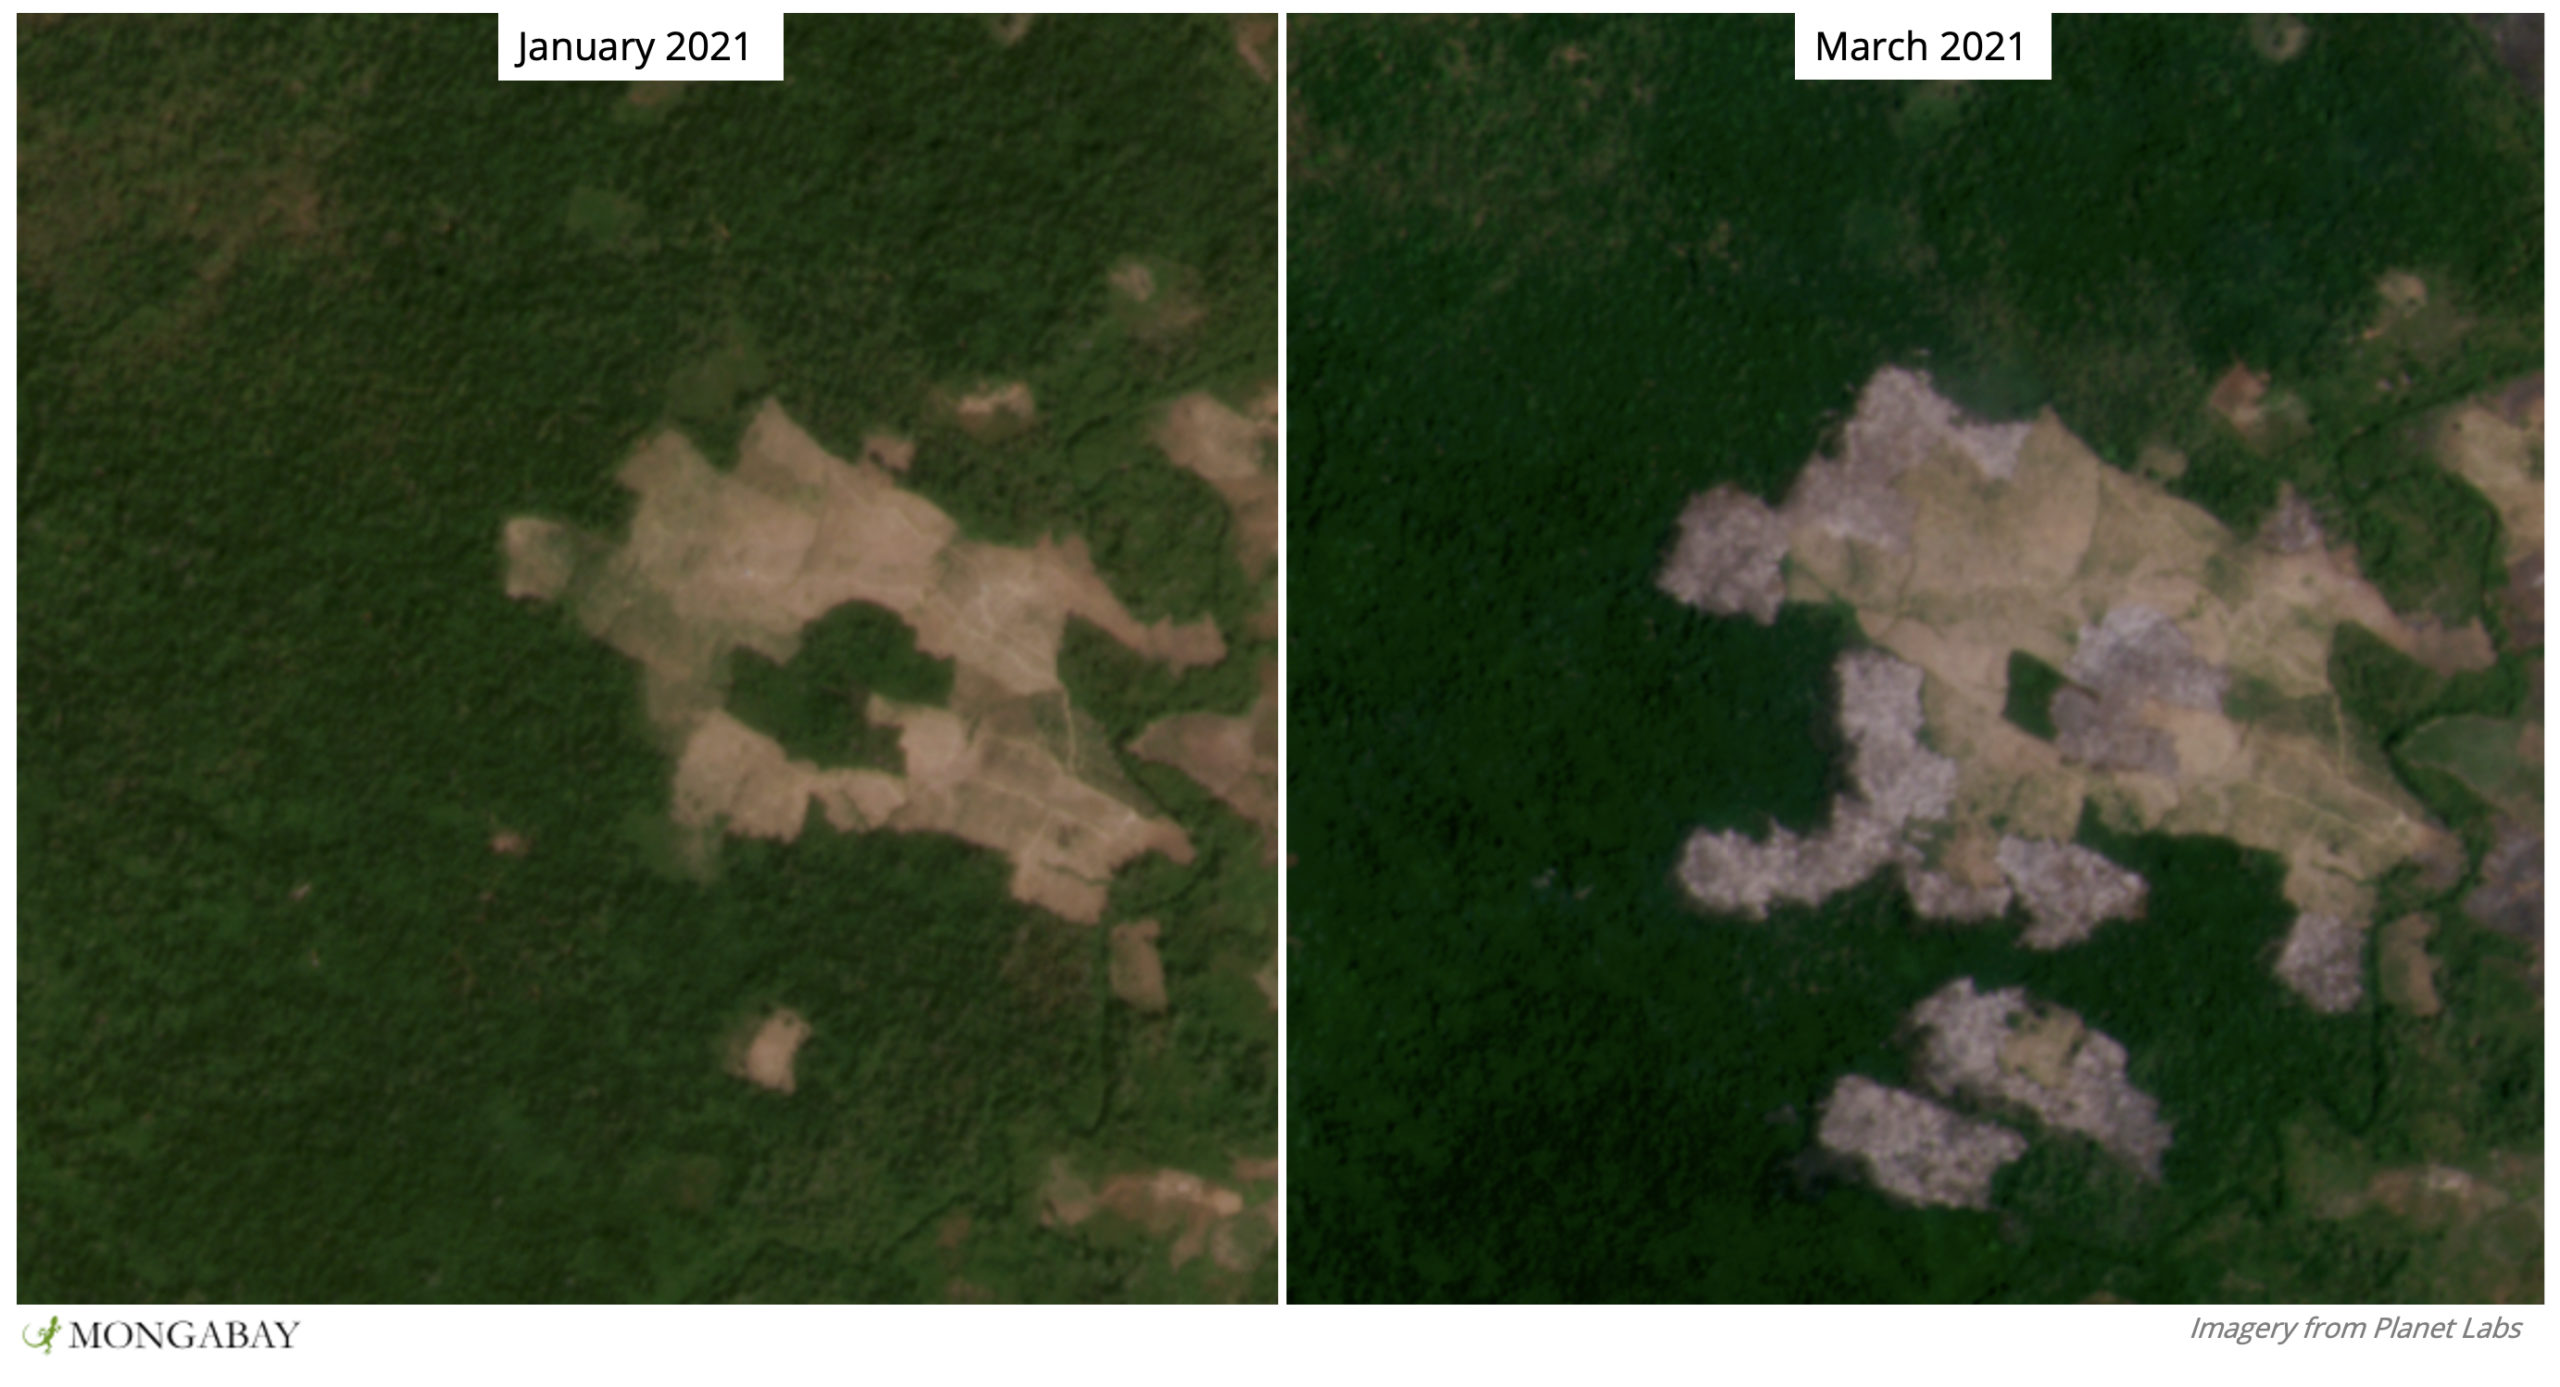 Satellite imagery shows the recent expansion of a previously cleared area into primary forest in Keo Seima Wildlife Sanctuary.